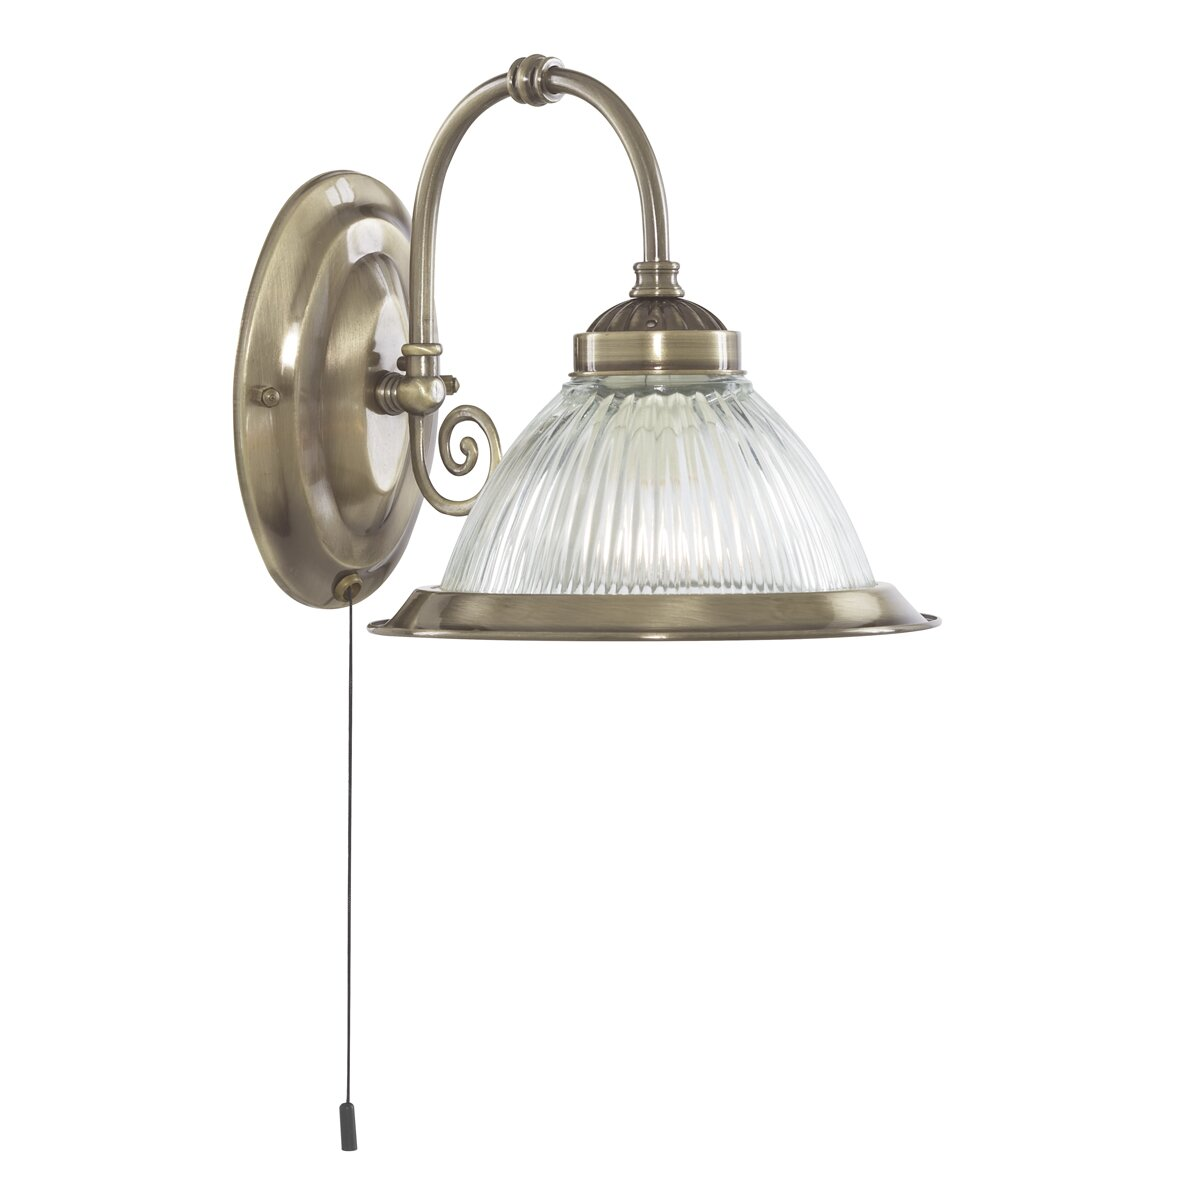 Wall Sconce With Magnifying Glass : Searchlight American Diner 1 Light Wall Sconce & Reviews Wayfair UK